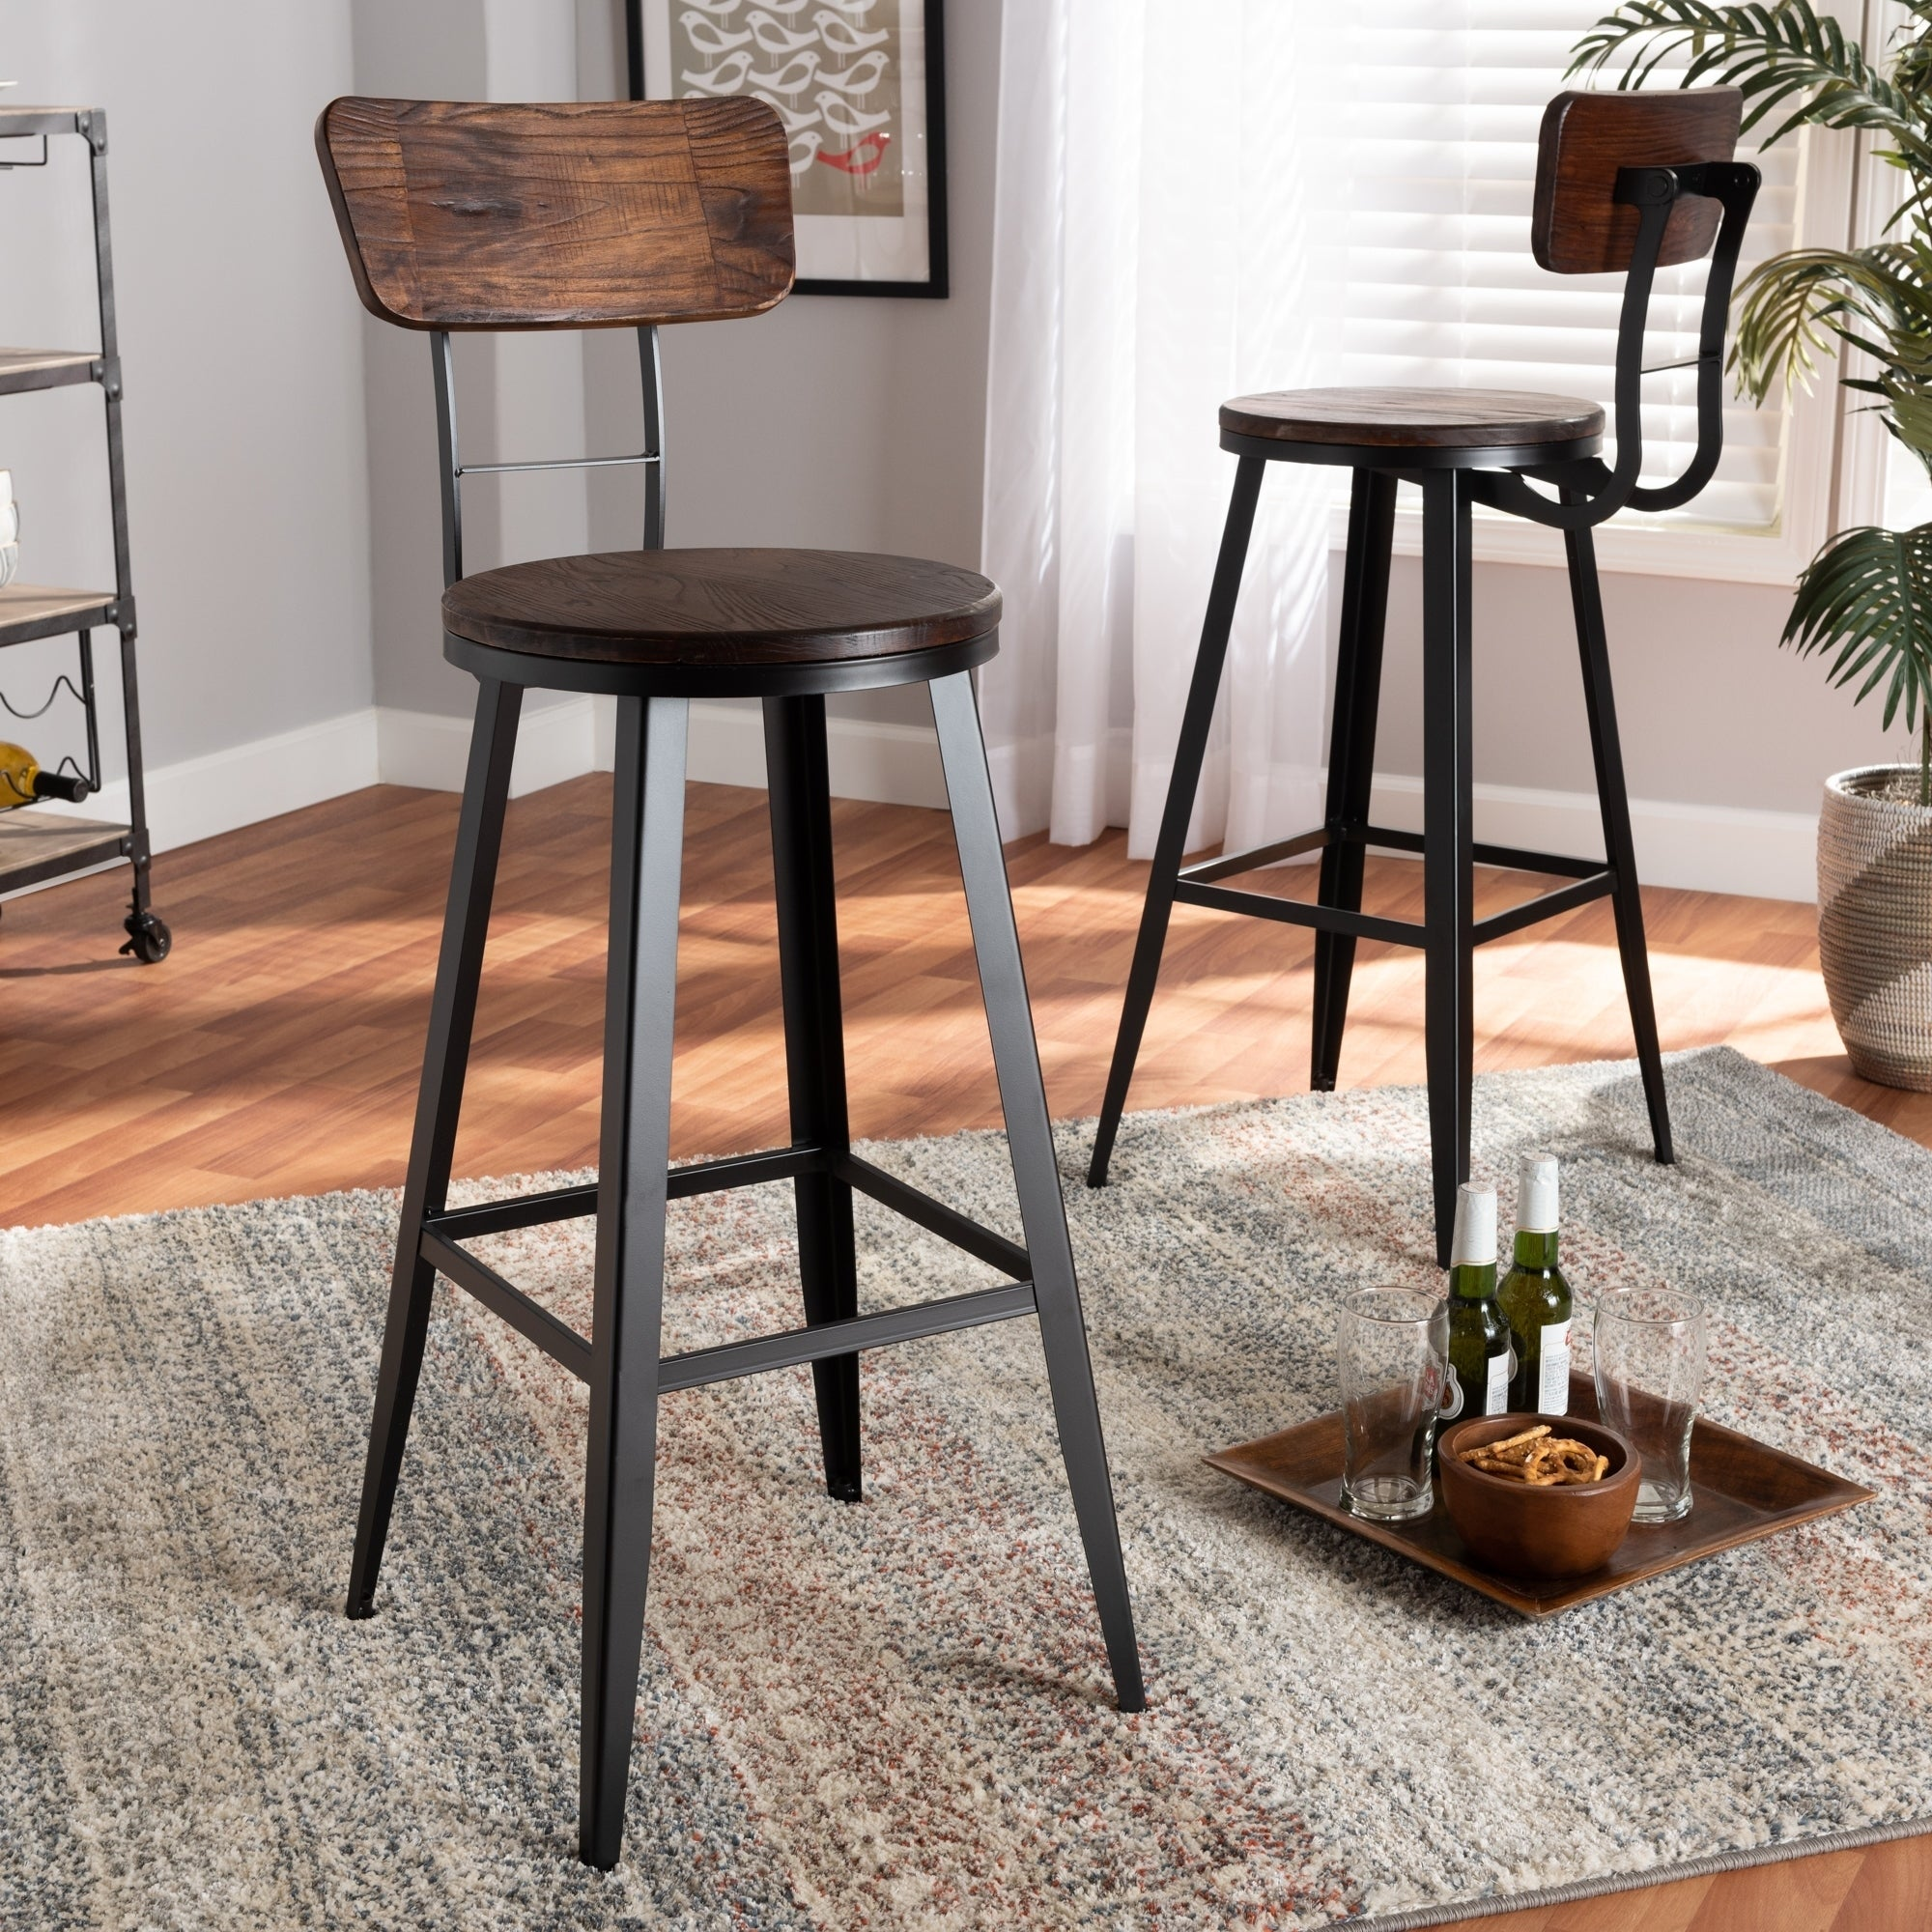 Industrial Metal Bar Stool Adjustable Wood Back Kitchen High Chair Dining Rustic